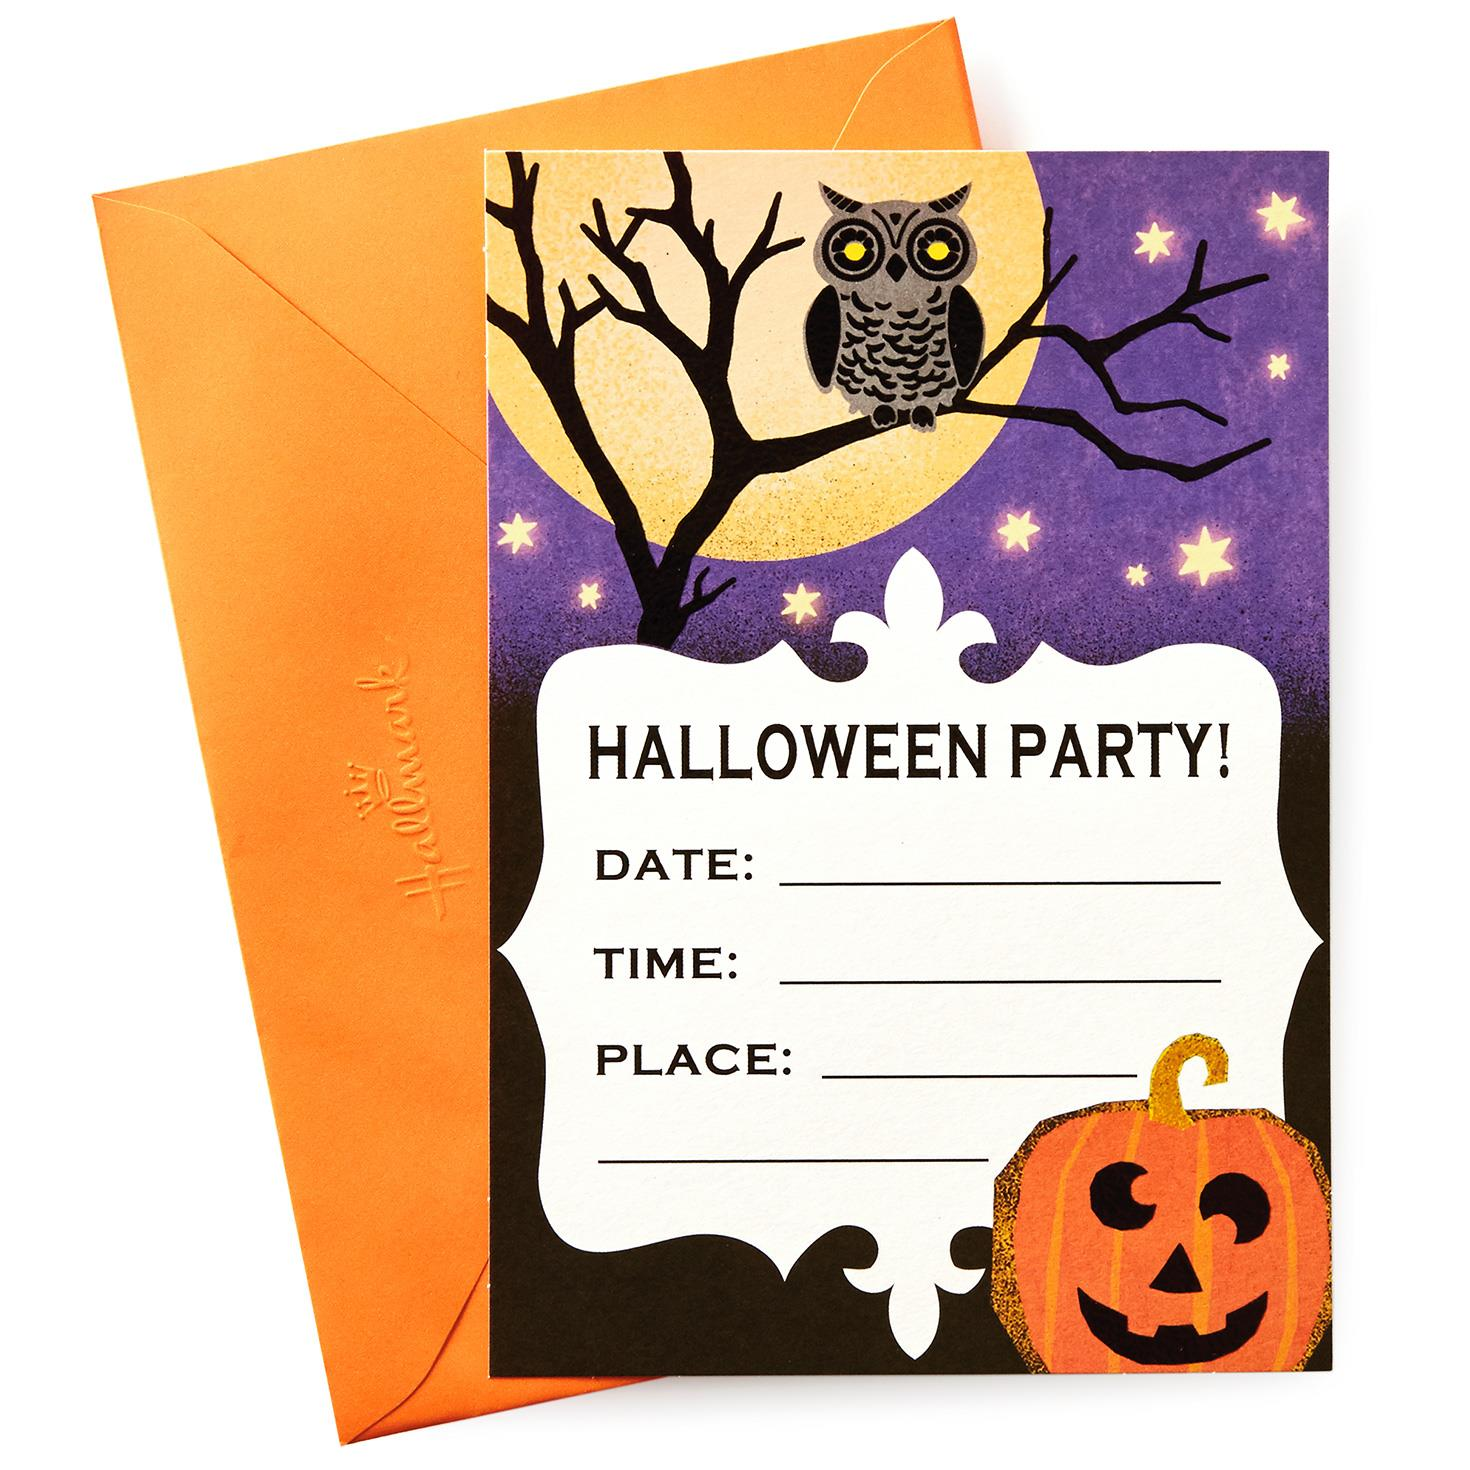 Hallmark Party Invitations Images - Party Invitations Ideas